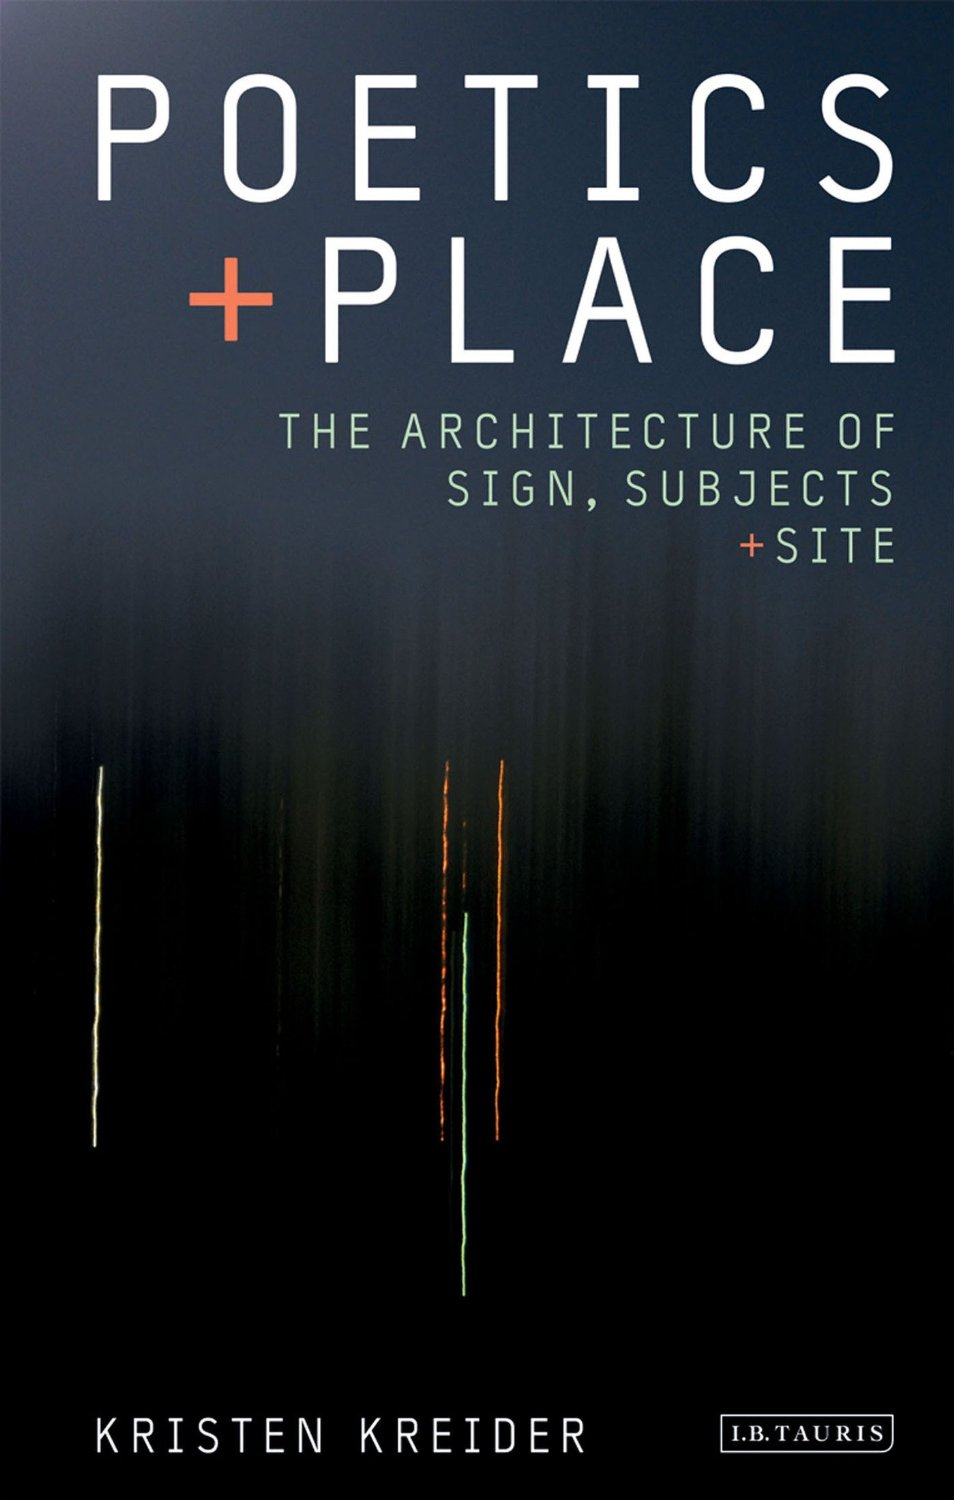 Kristen_Kreider_Poetics_and_Place_.jpg